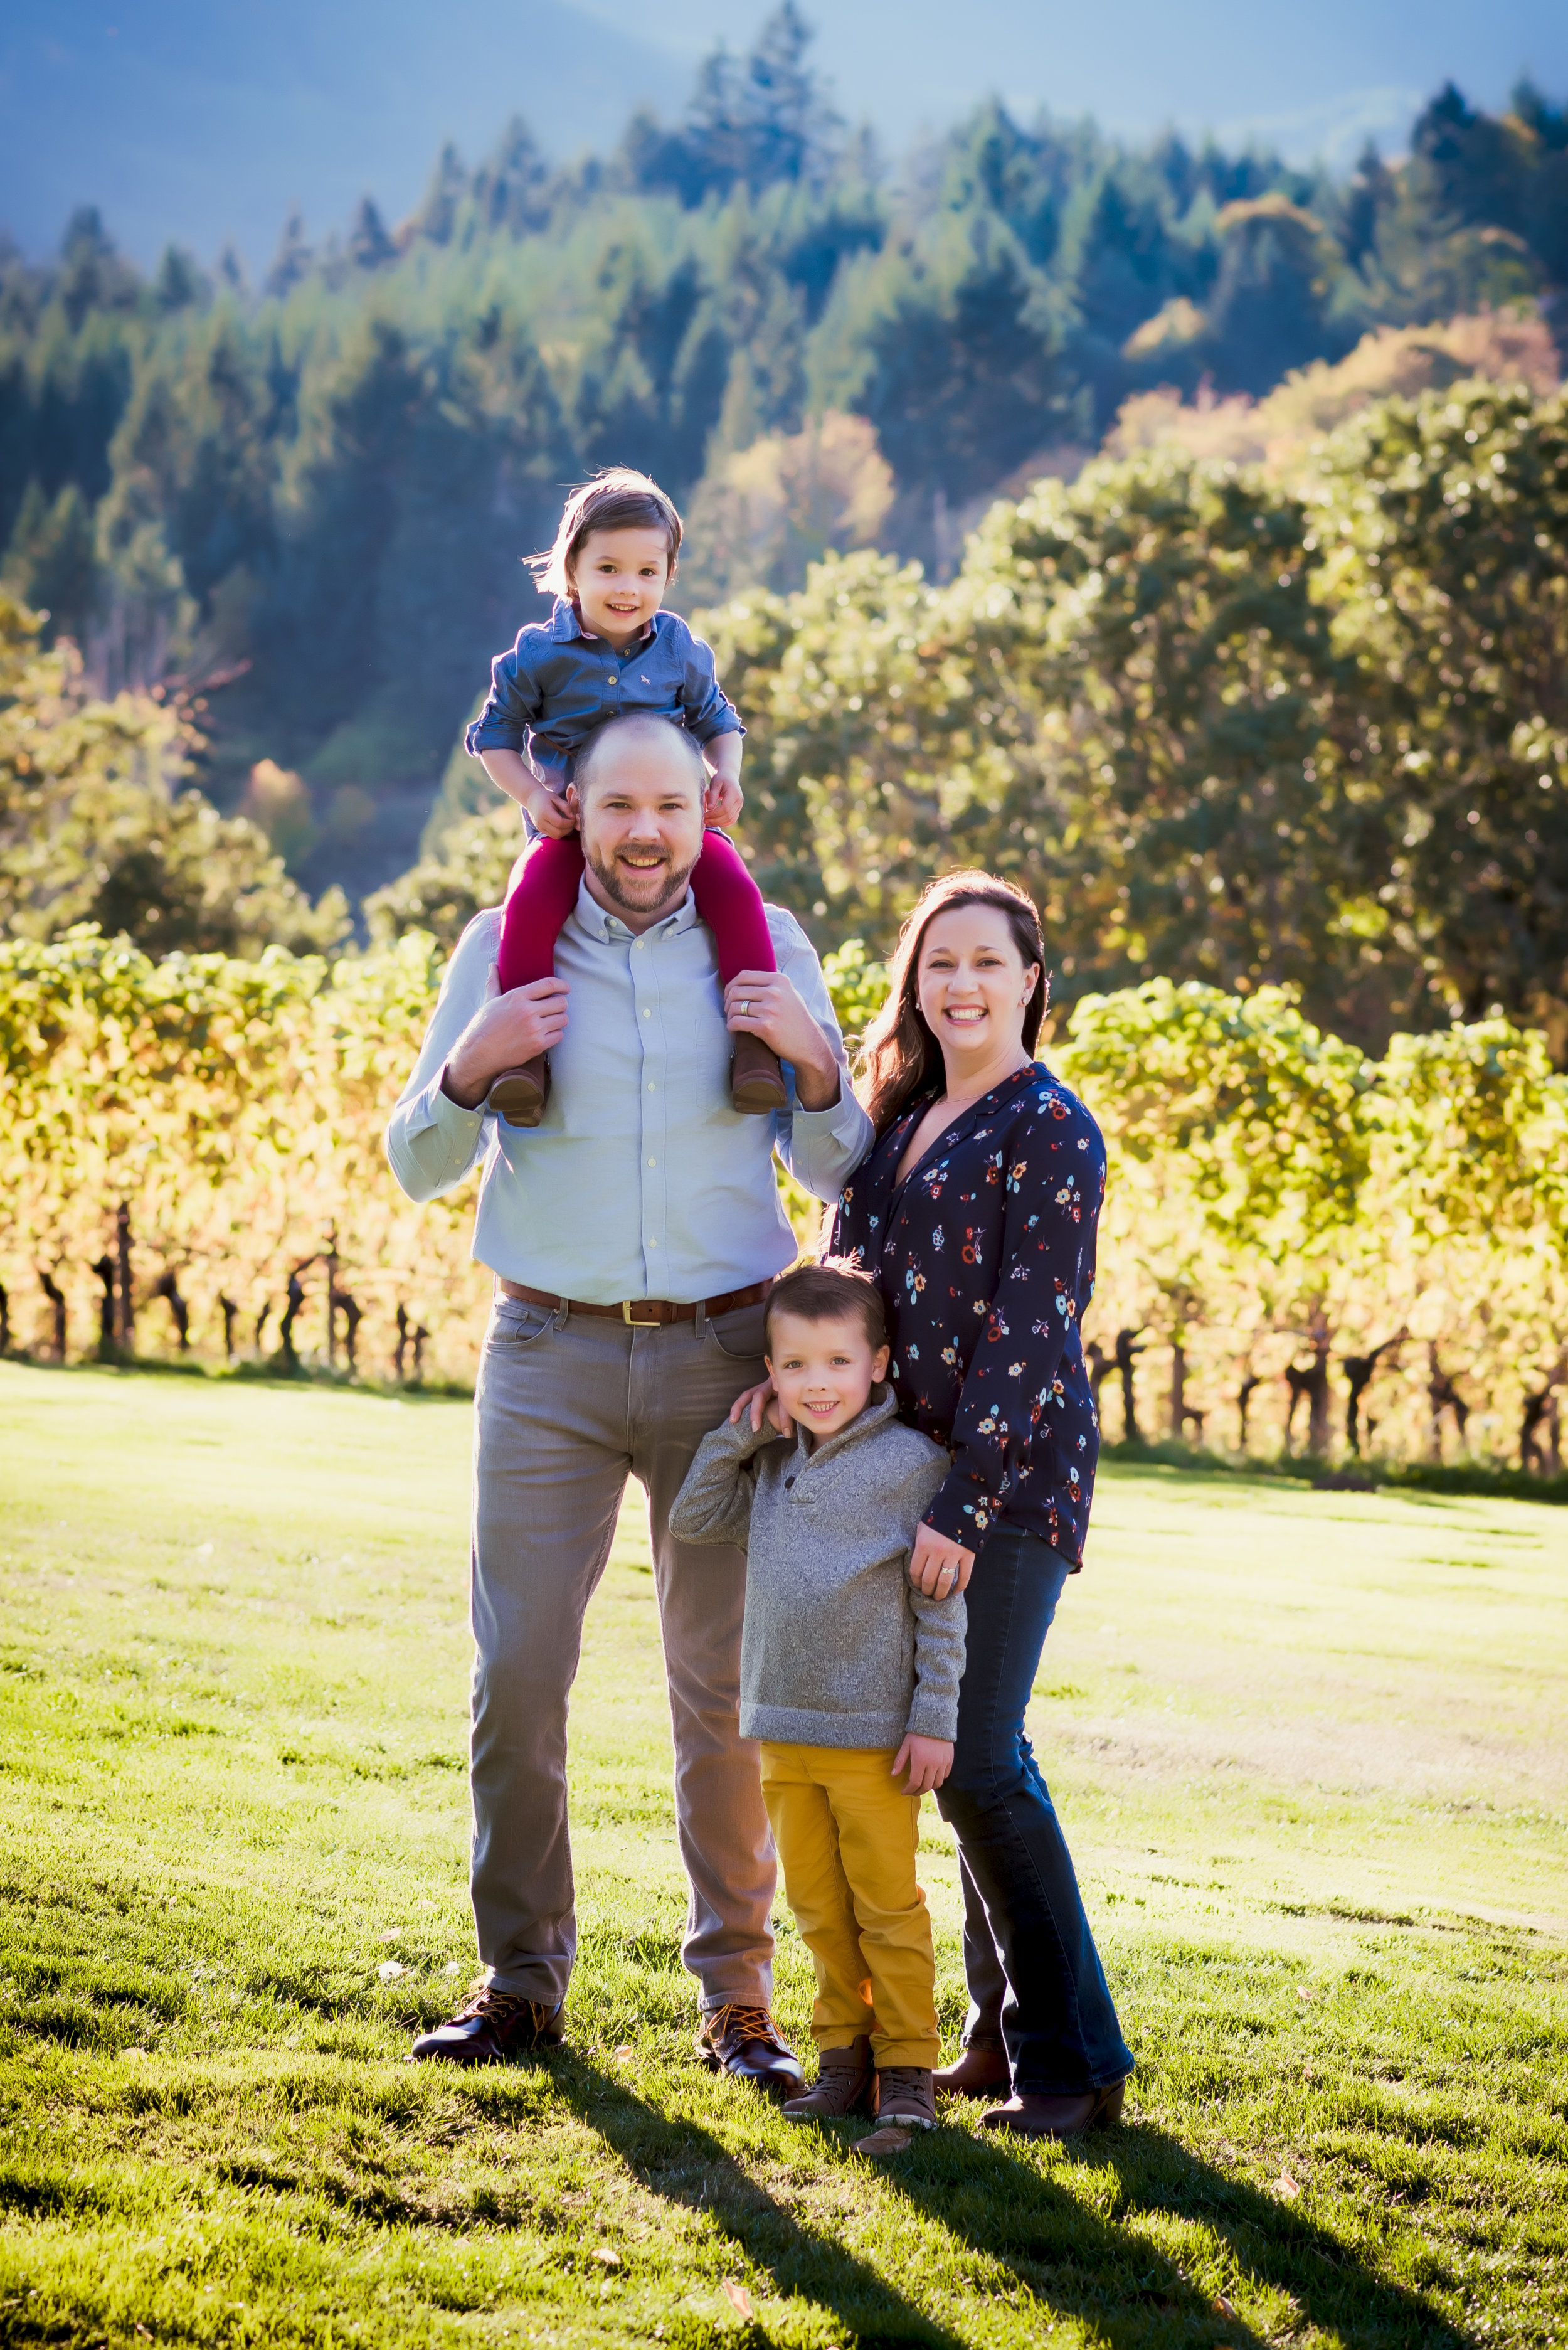 Outdoor Photography by Artistic Bliss Portraits at David Hill Winery Forest Grove, OR